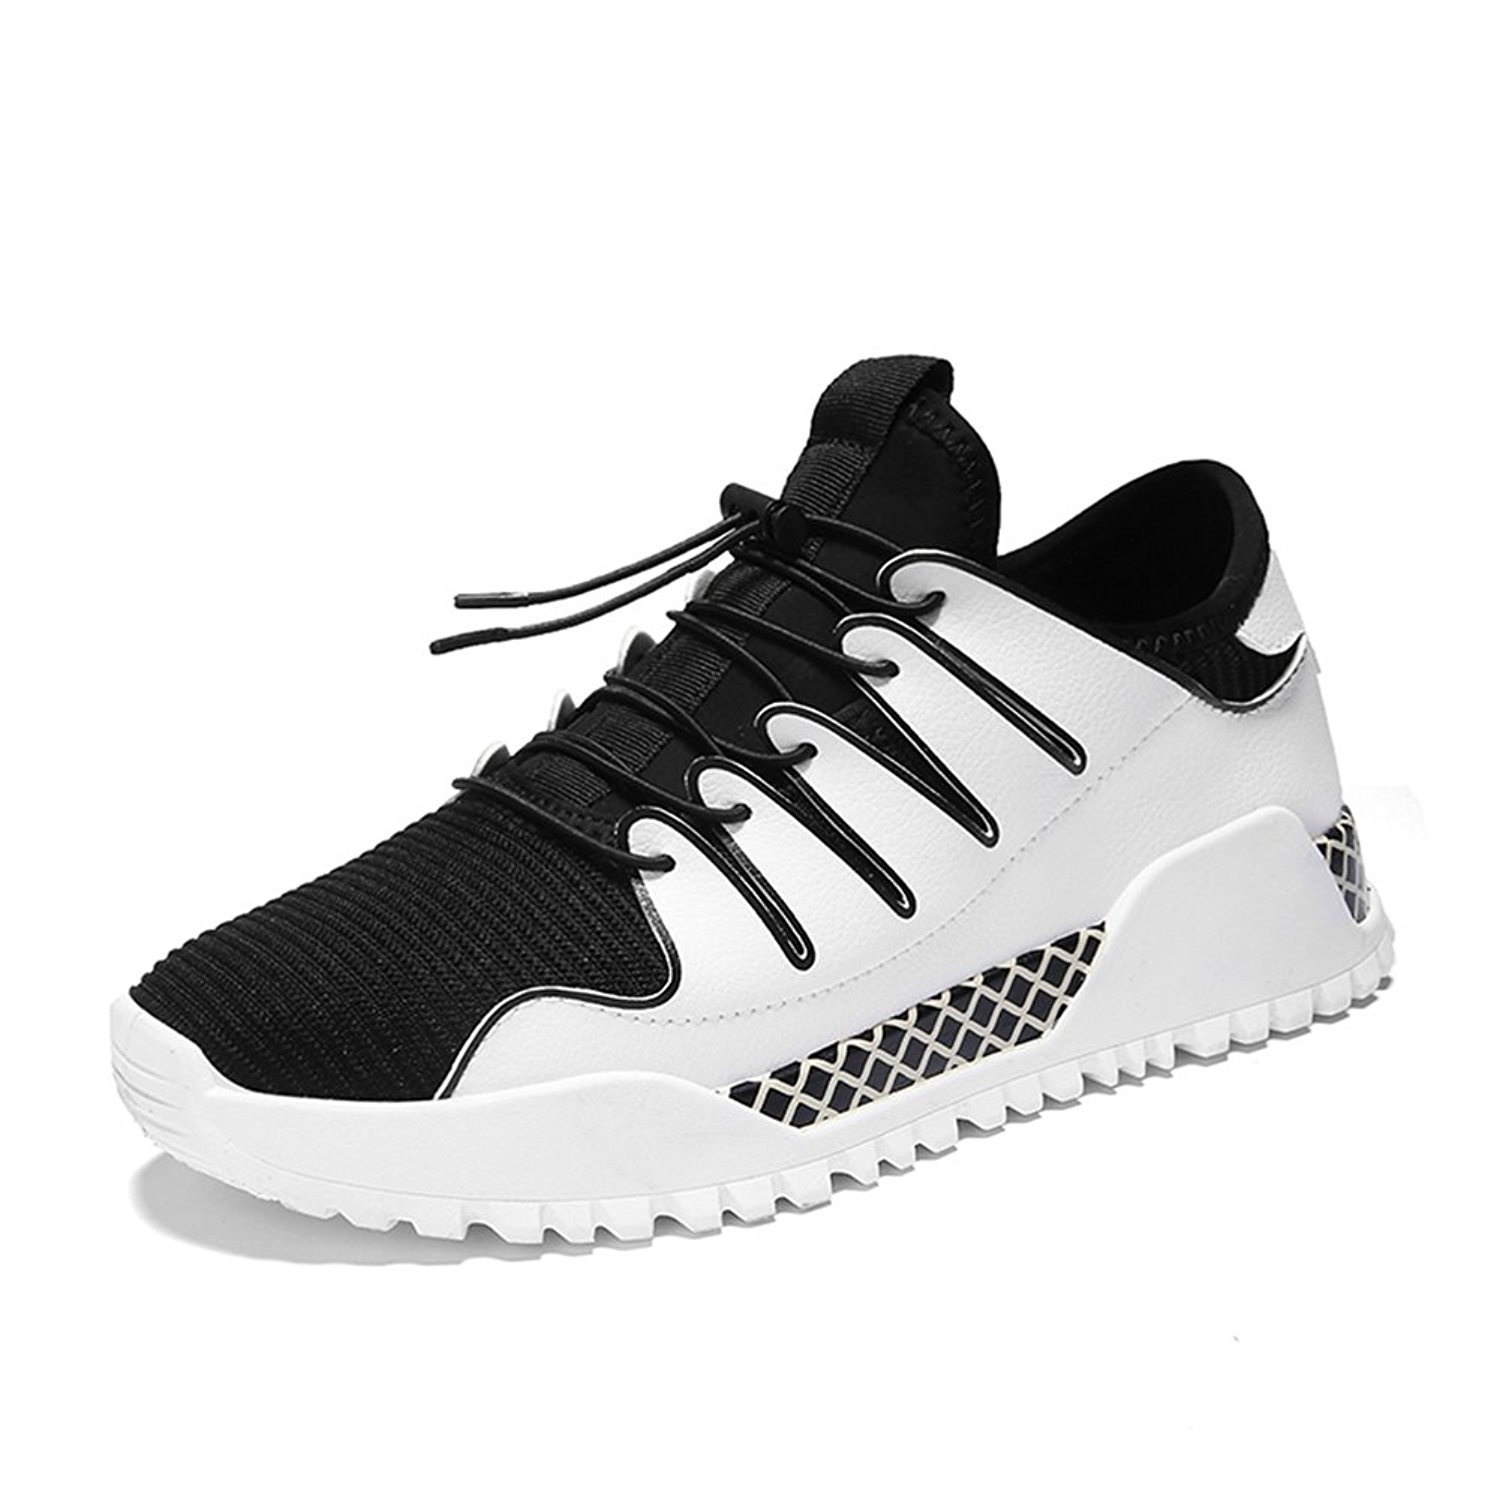 ed97b0ddd7cb5 Get Quotations · MMM Shoes Men s Shoes Spring Fall Comfort Athletic Shoes  Tennis Shoes Lace-up For Athletic